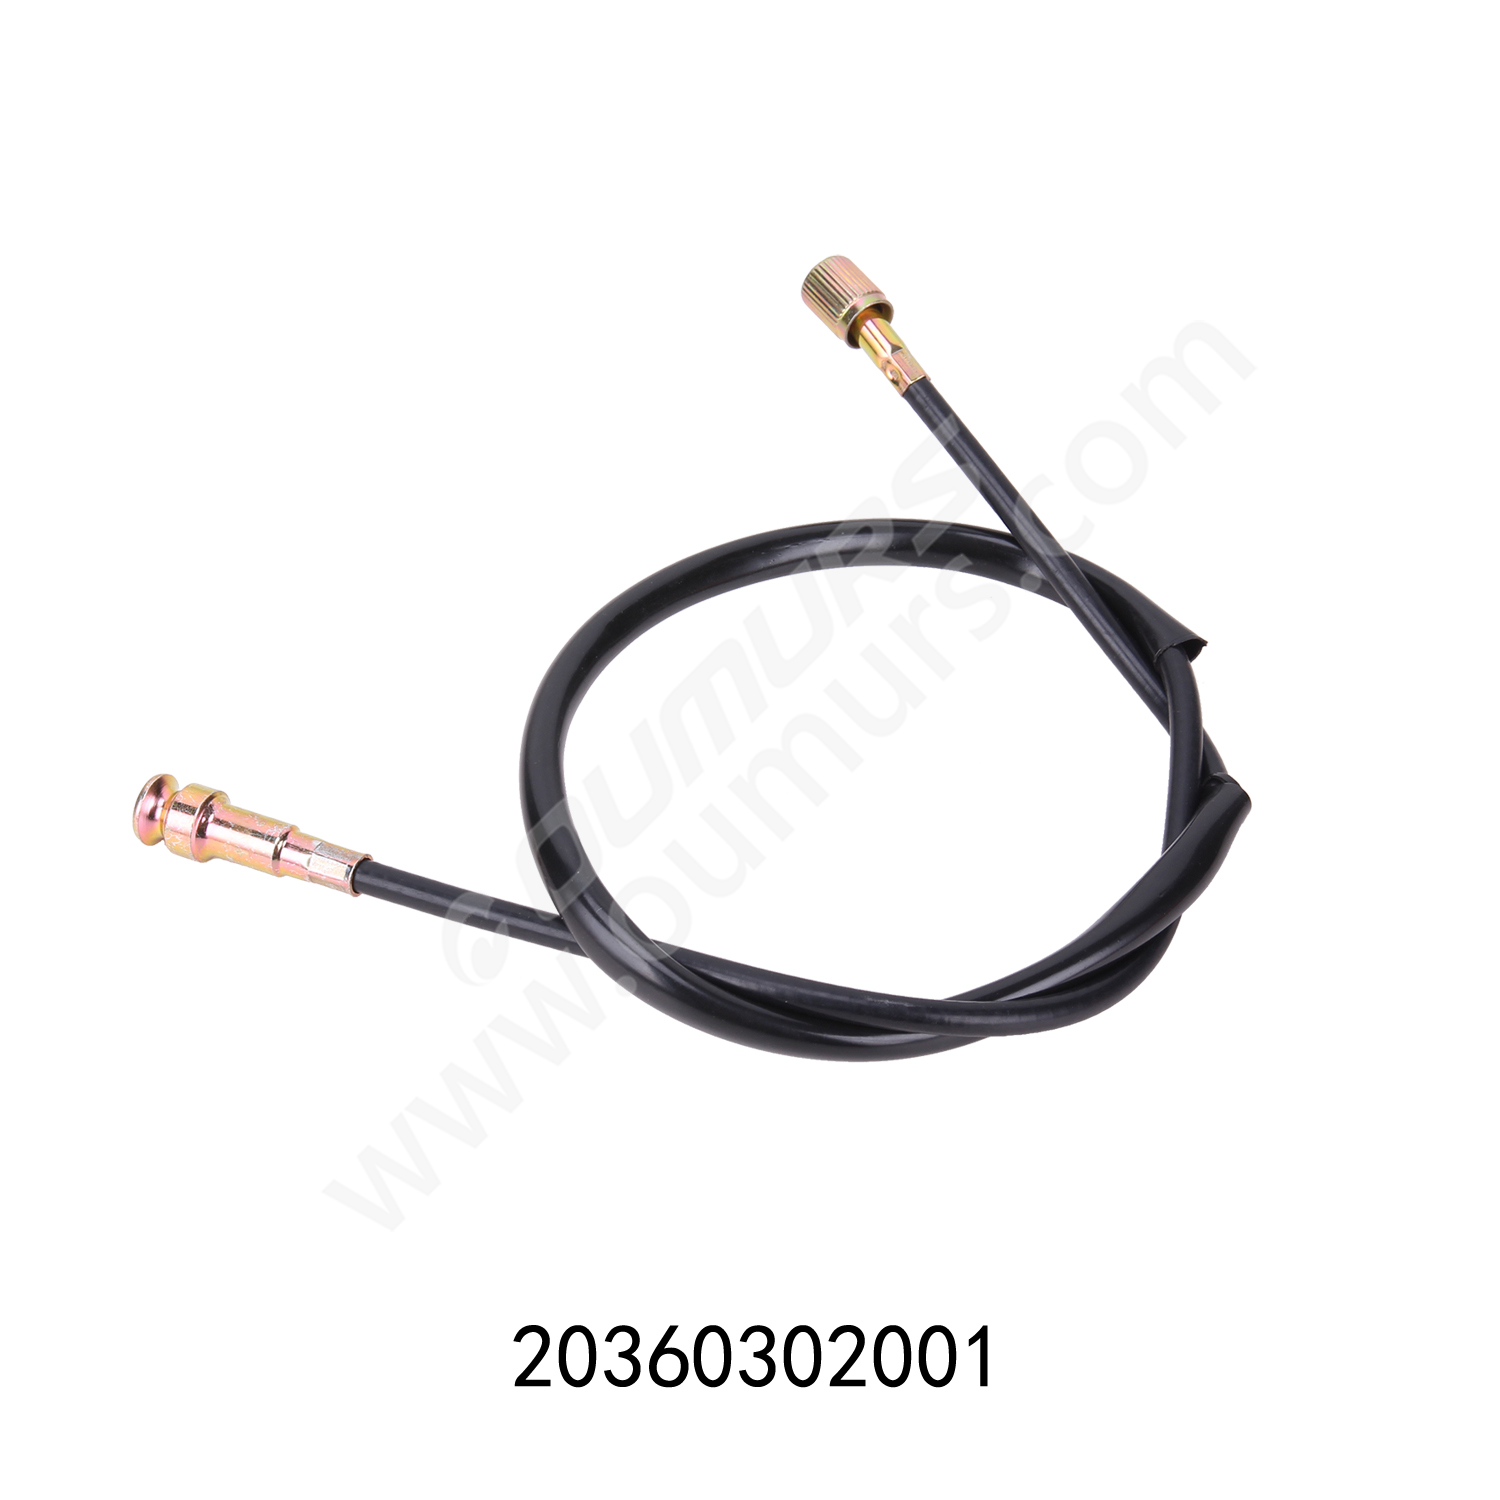 TACHOMETER CABLE-GN125